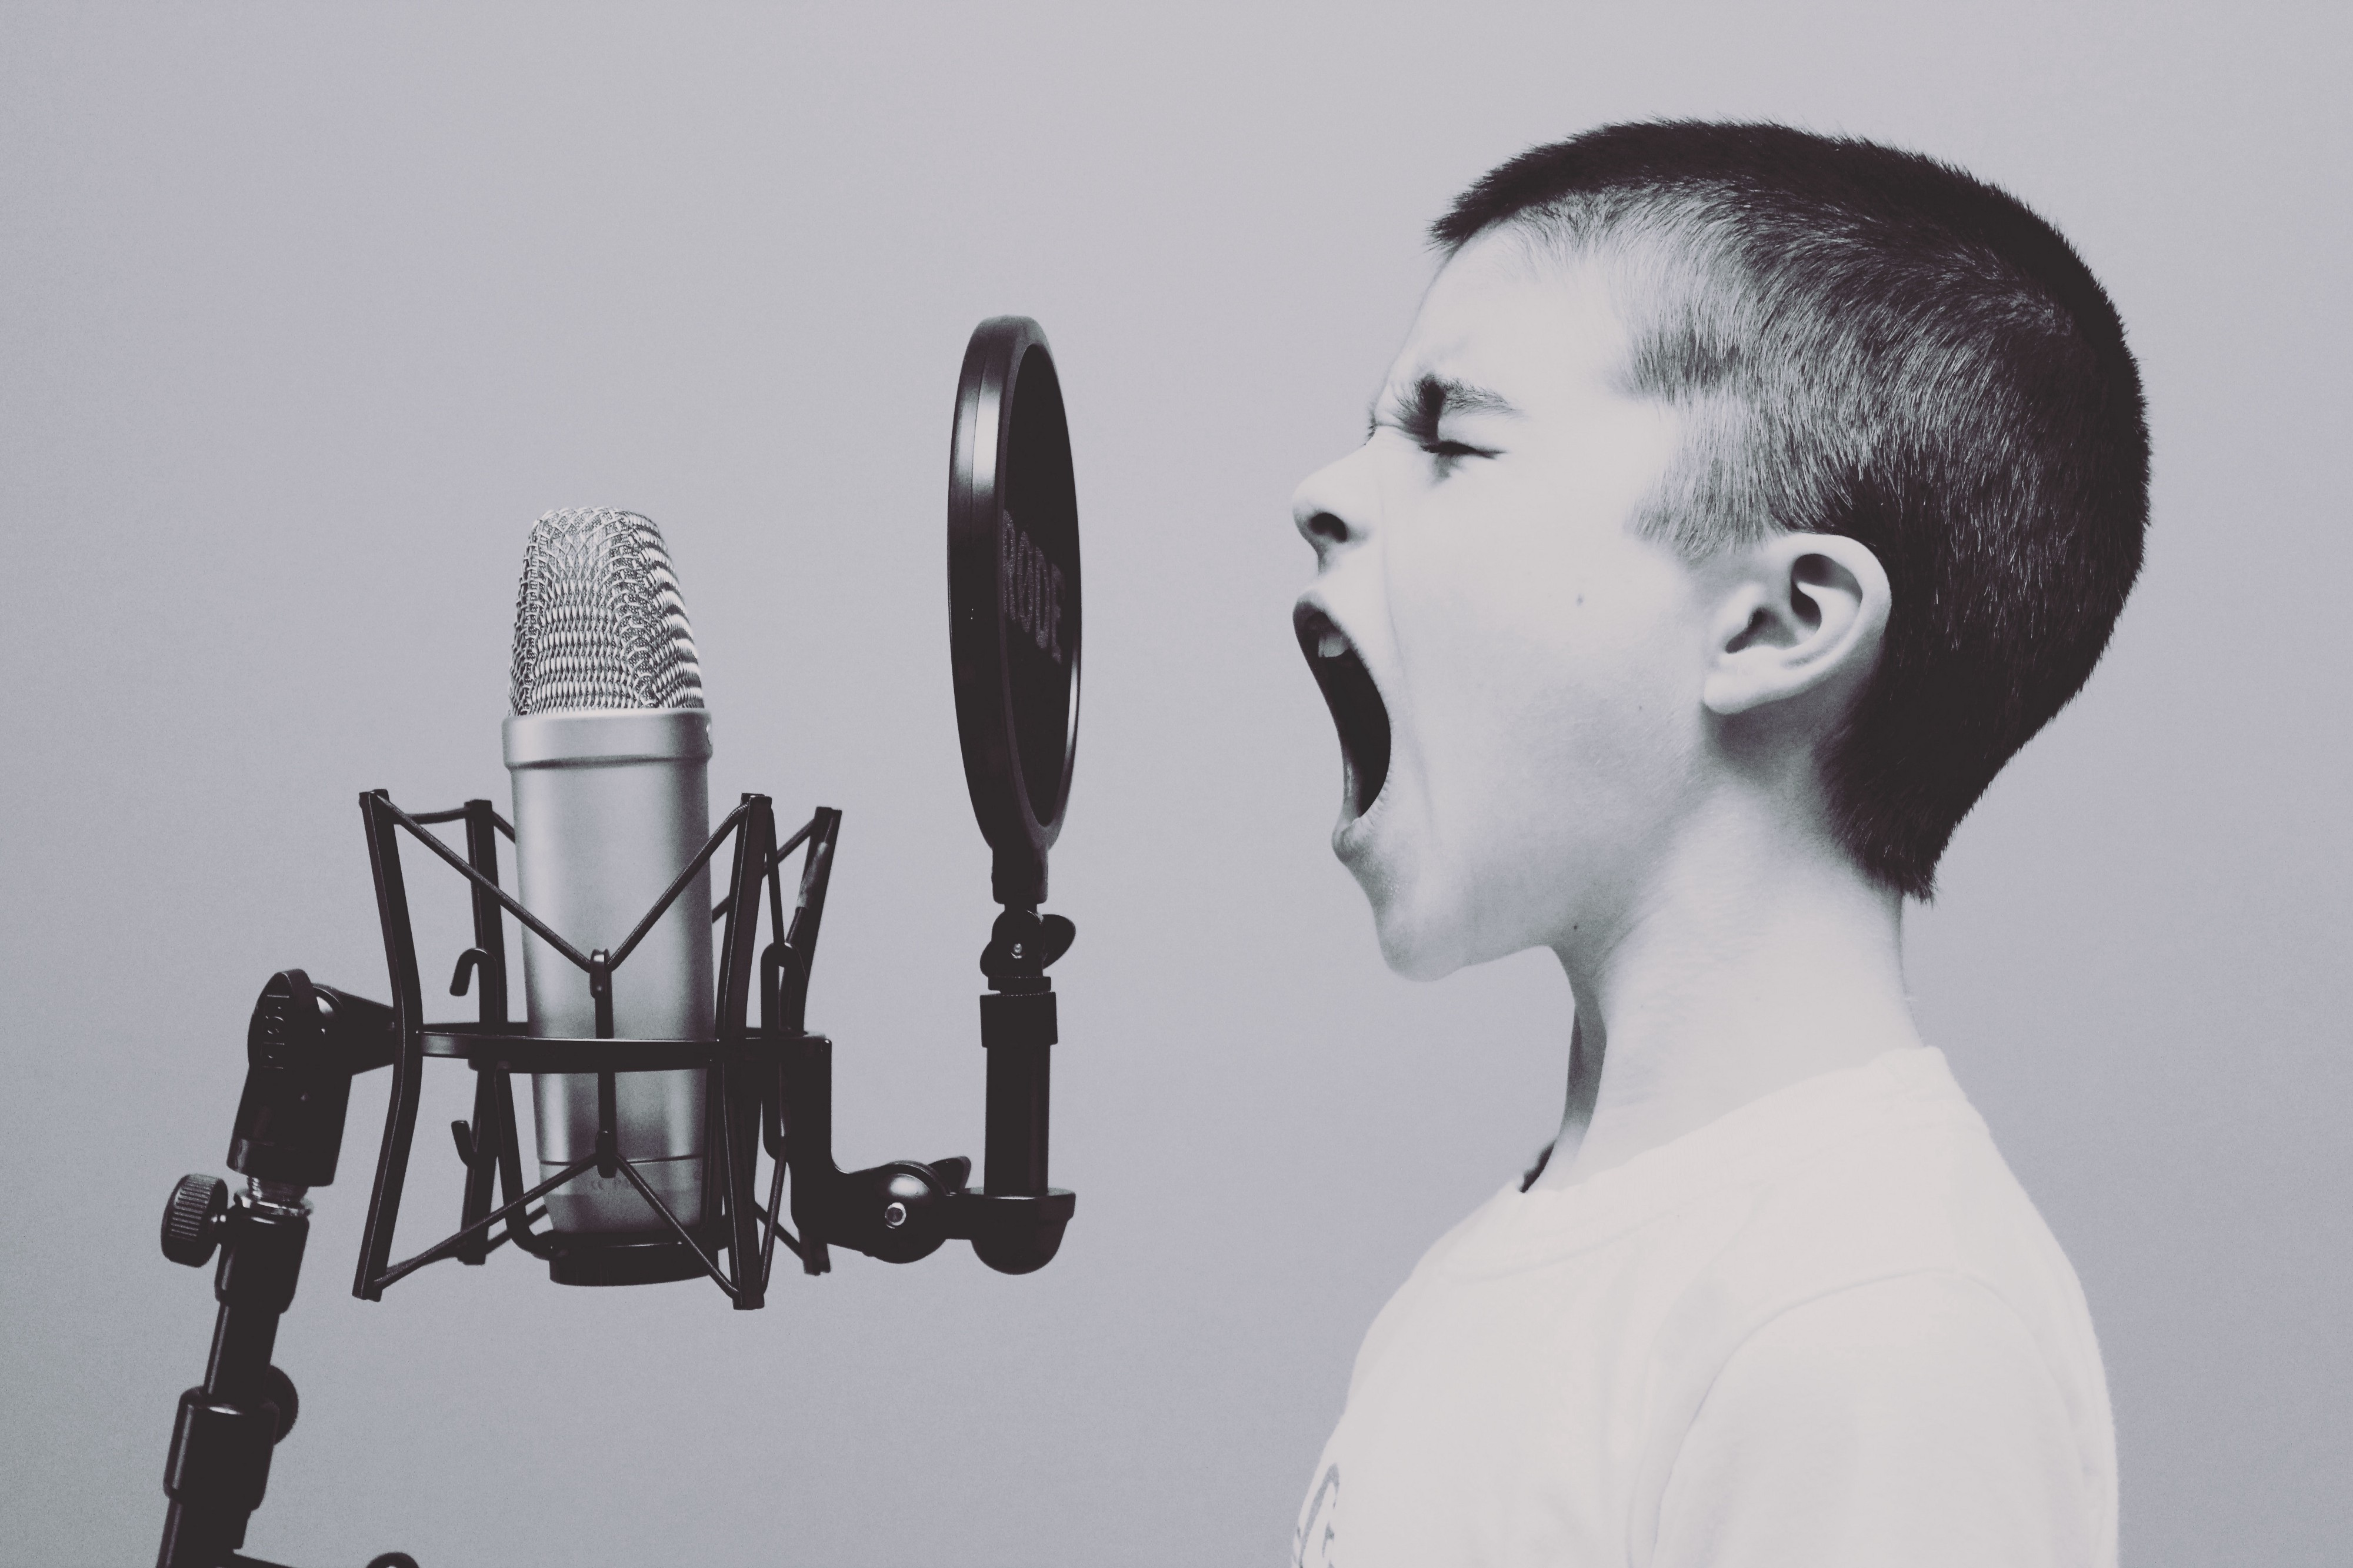 Can you hear me now? Far-field voice - Towards Data Science